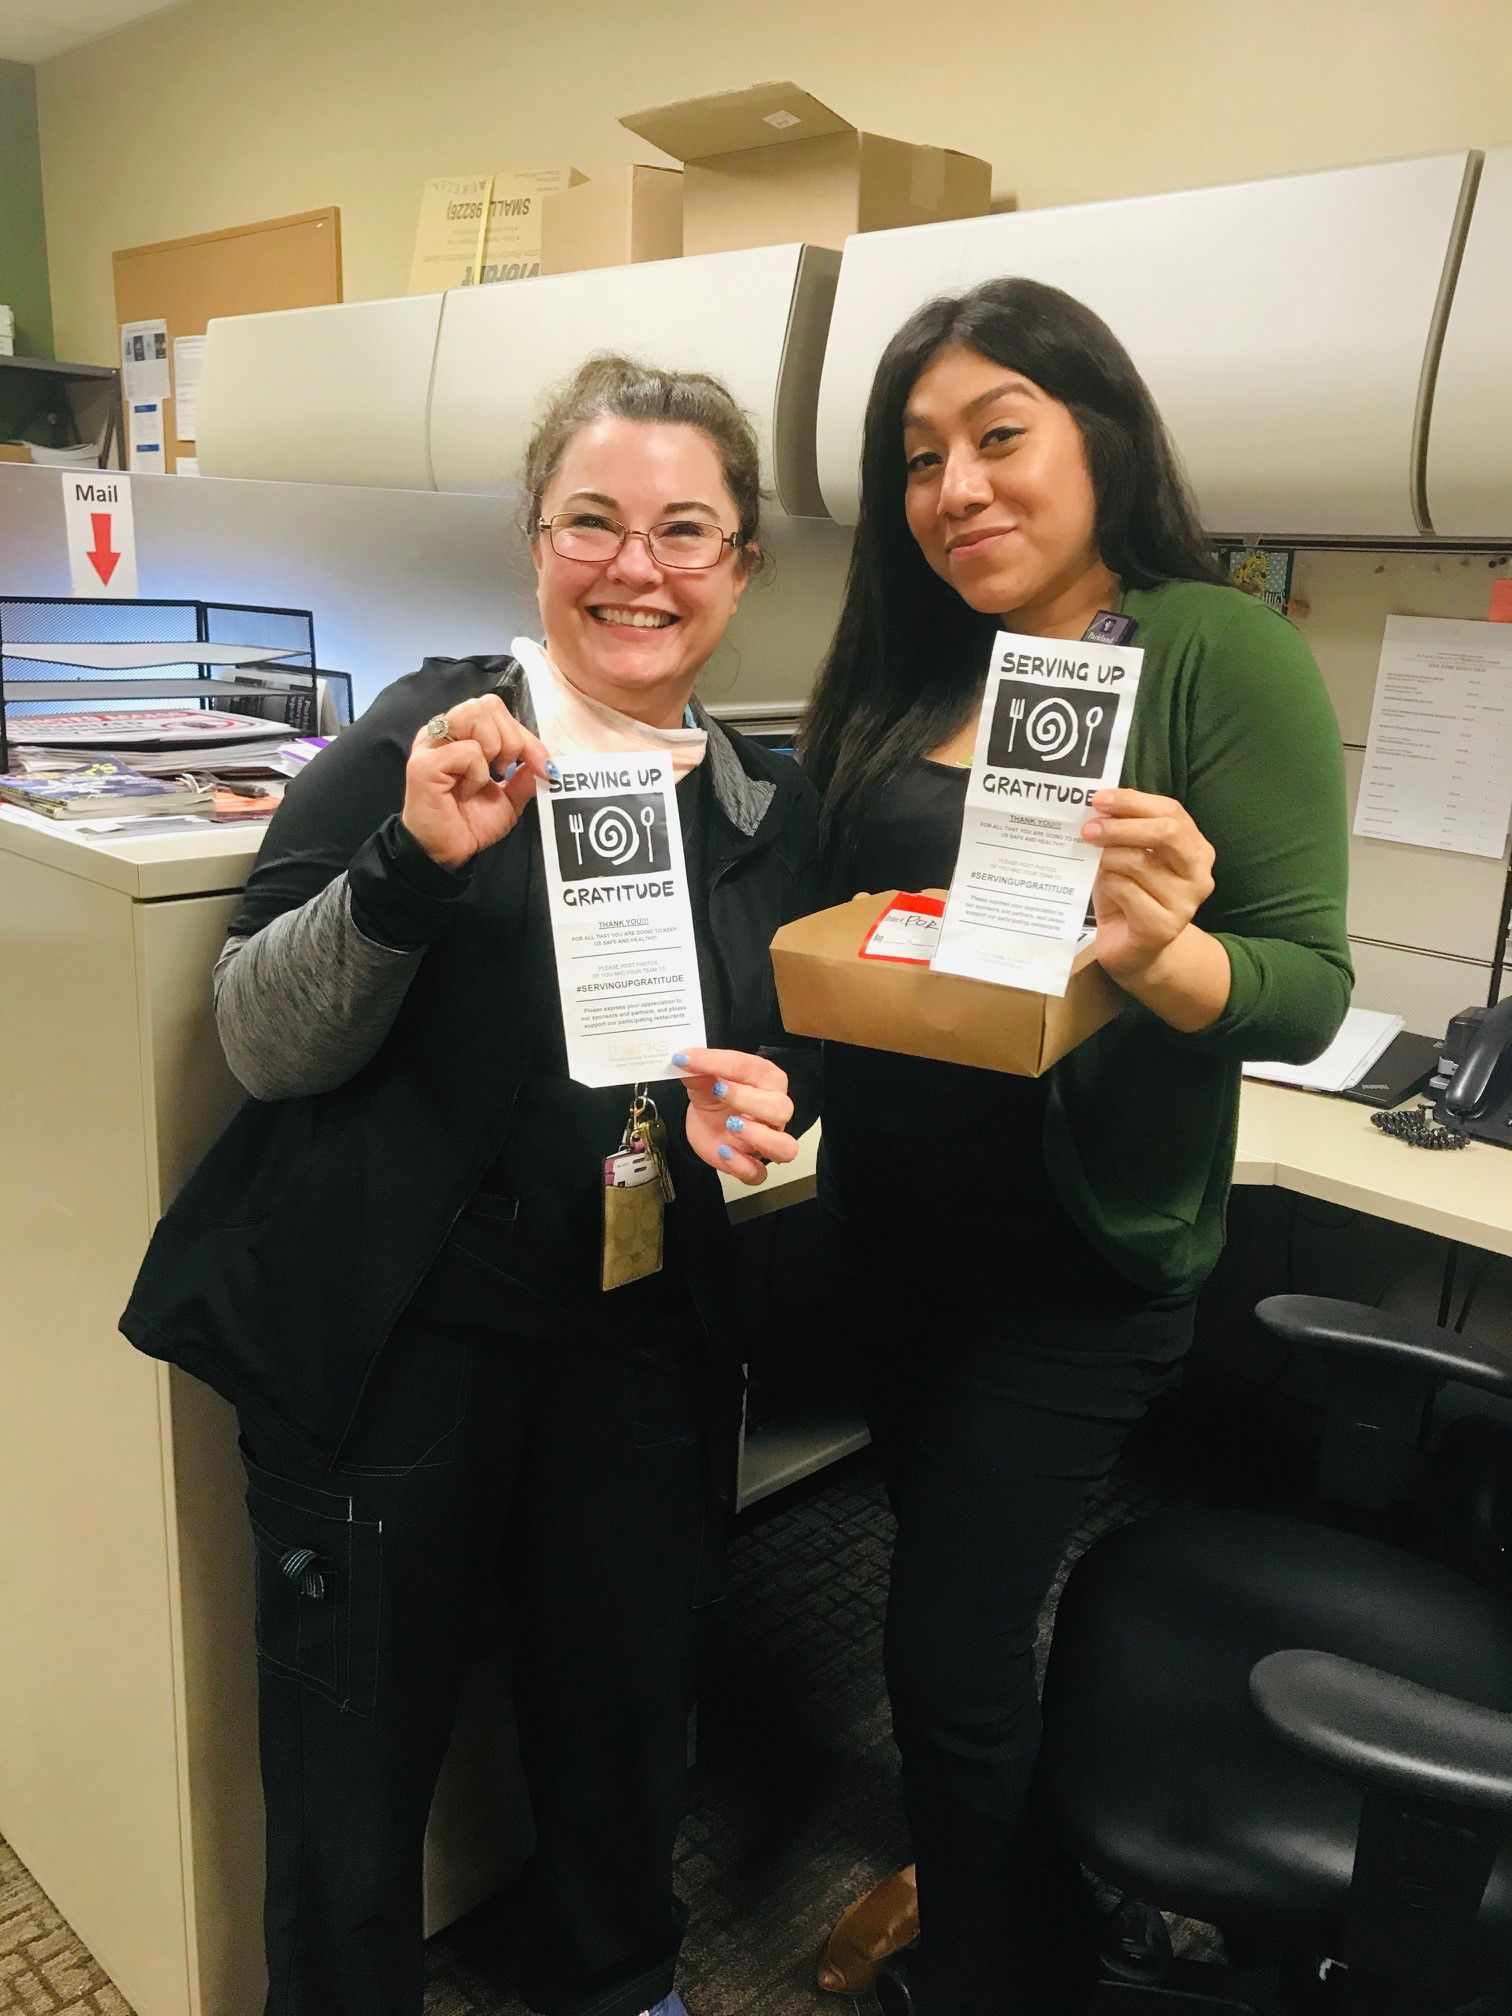 With assistance by the American Jewish Committee s Community of Conscience and other private donors, the Thanks-Giving Foundation has launched Serving Up Gratitude, which purchases a grab-and-go meal from a local restaurant to be delivered to a local hospital worker like those at Parkland.